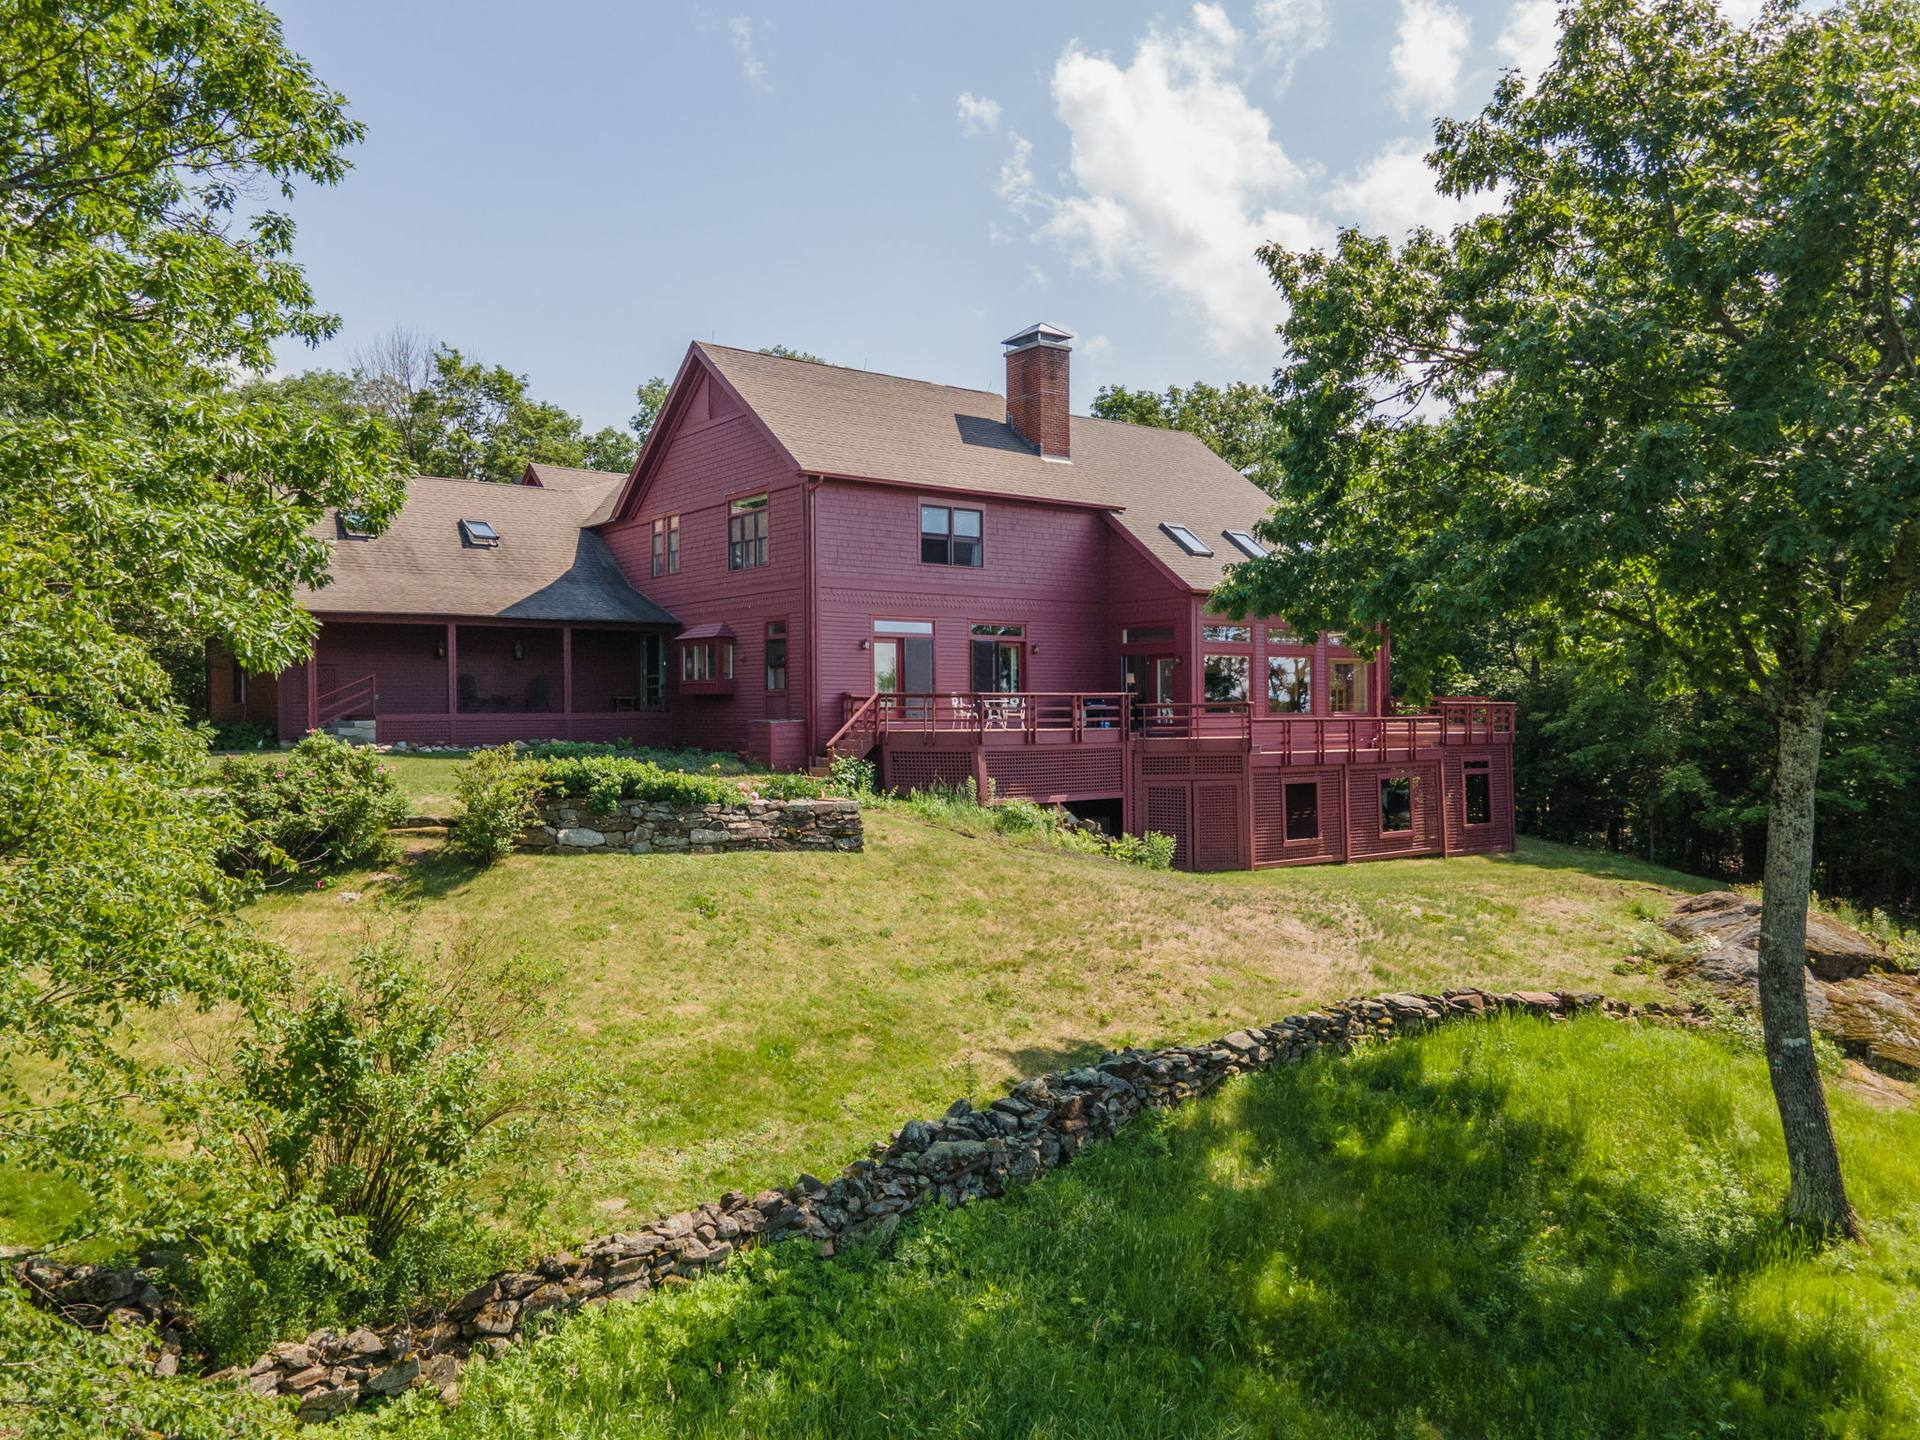 138 Cotton Hill Rd, Belmont, NH 03220, US